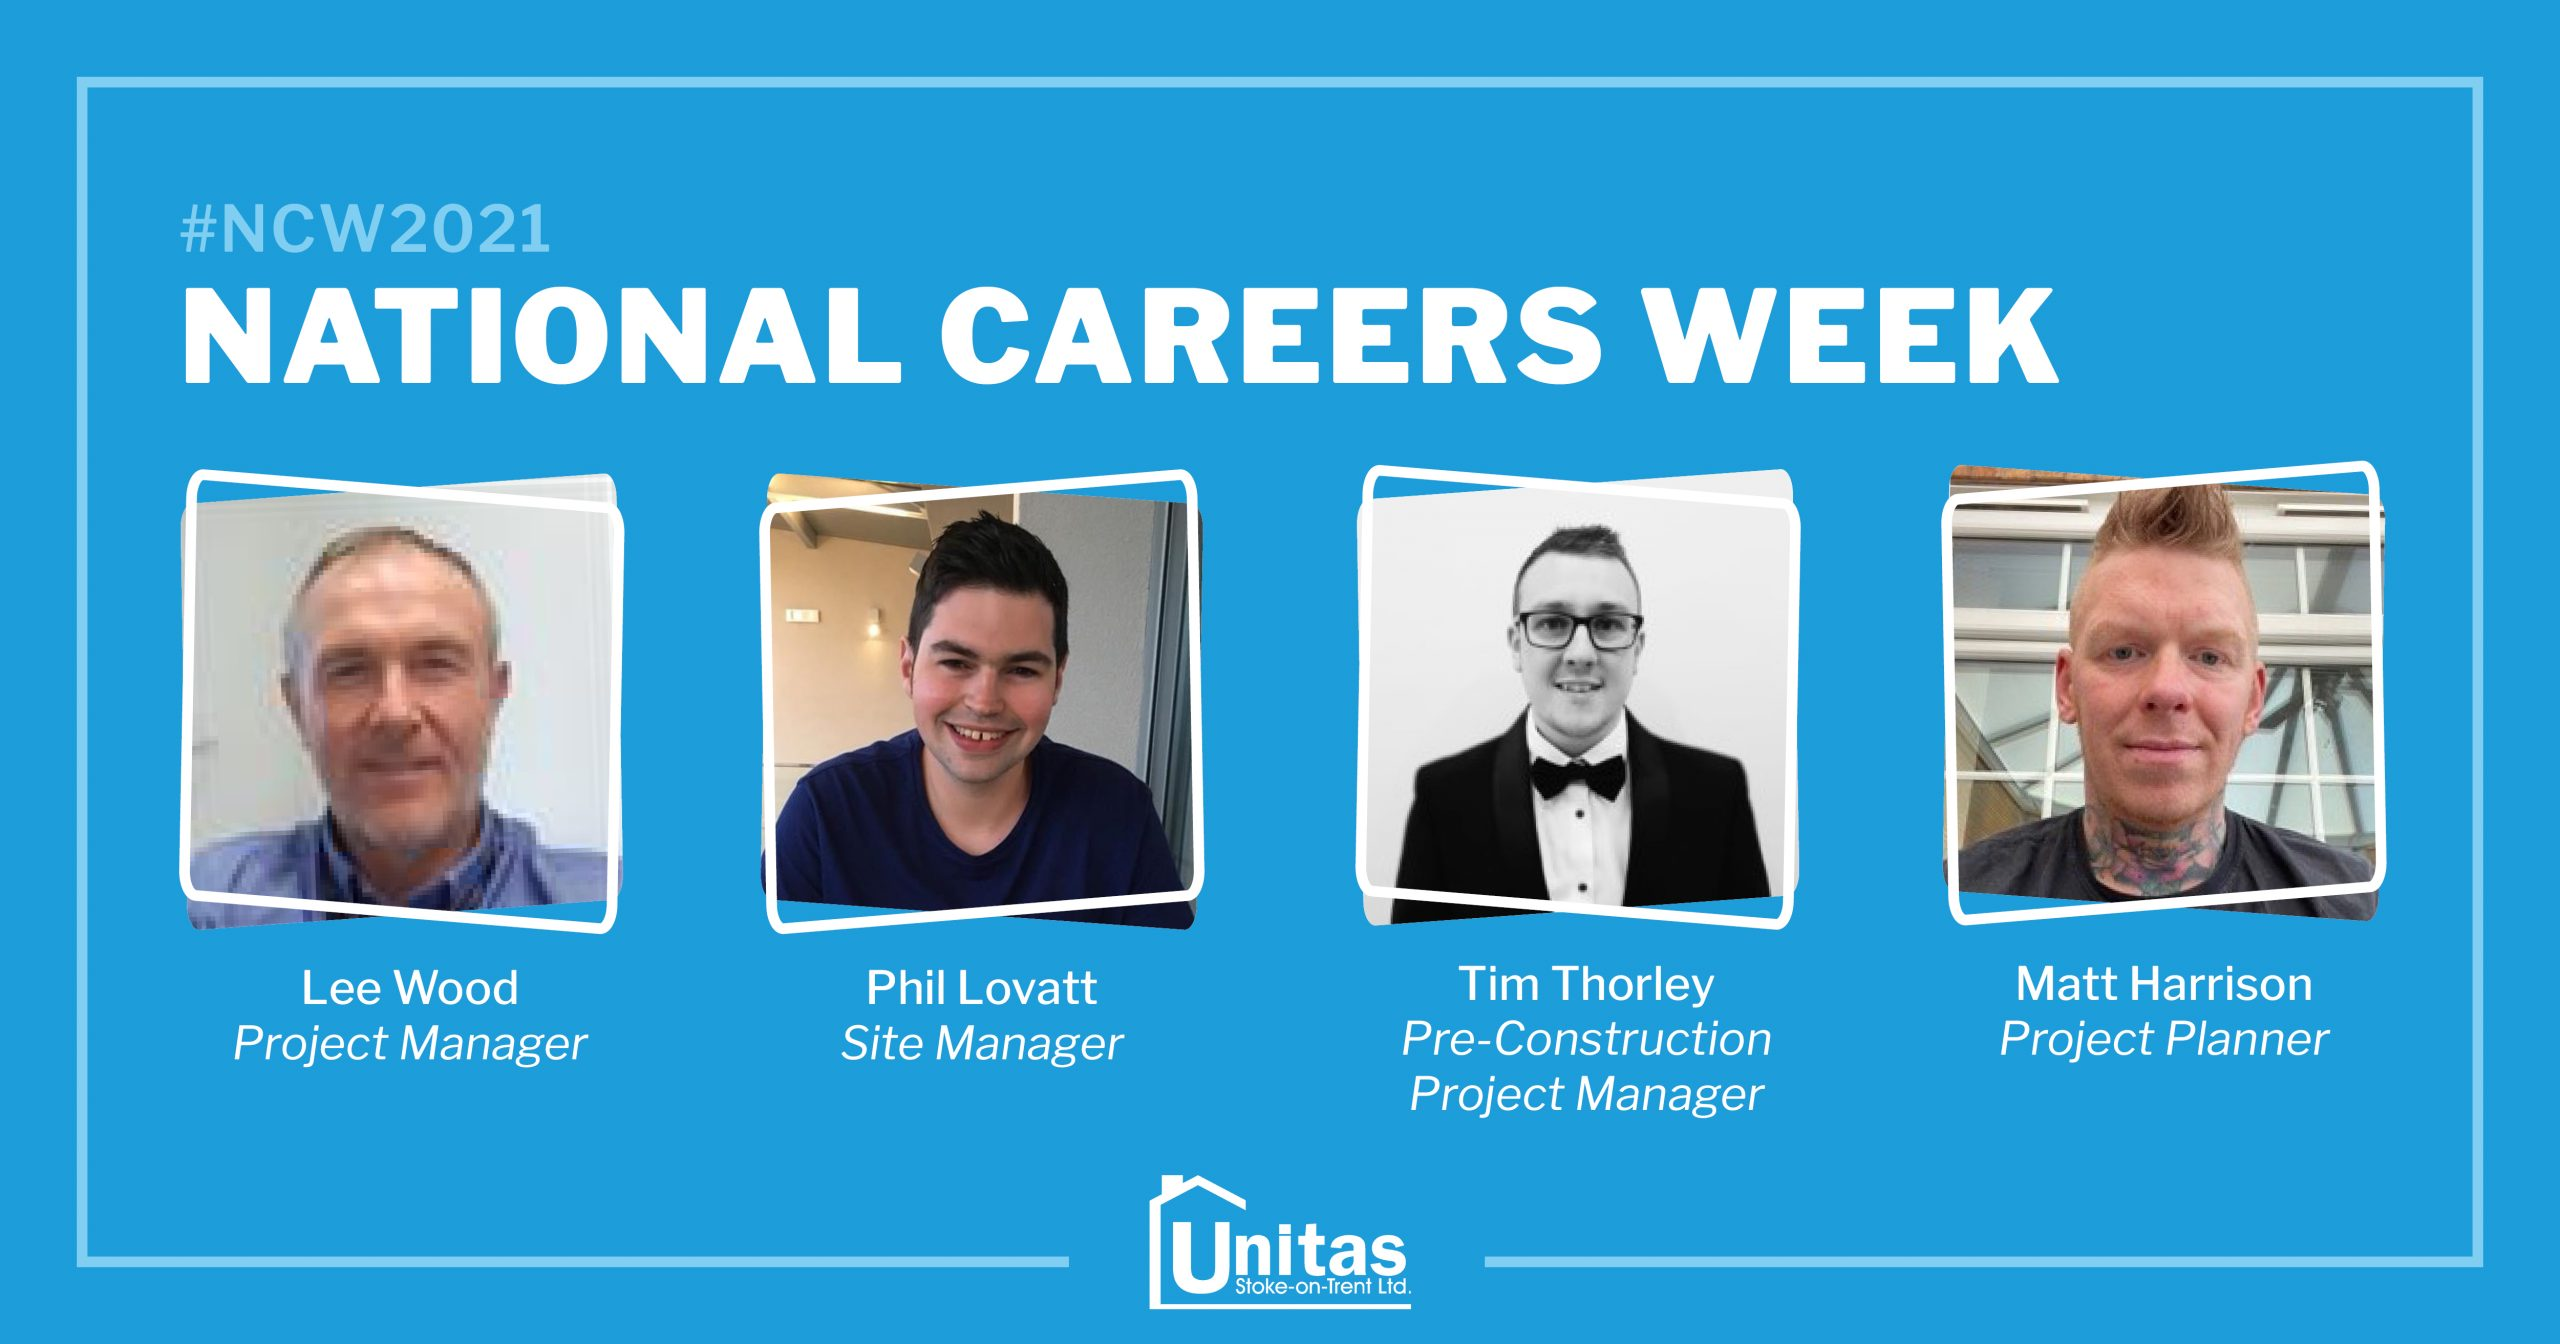 National Careers Week 2021: We speak to our staff about their career development at Unitas